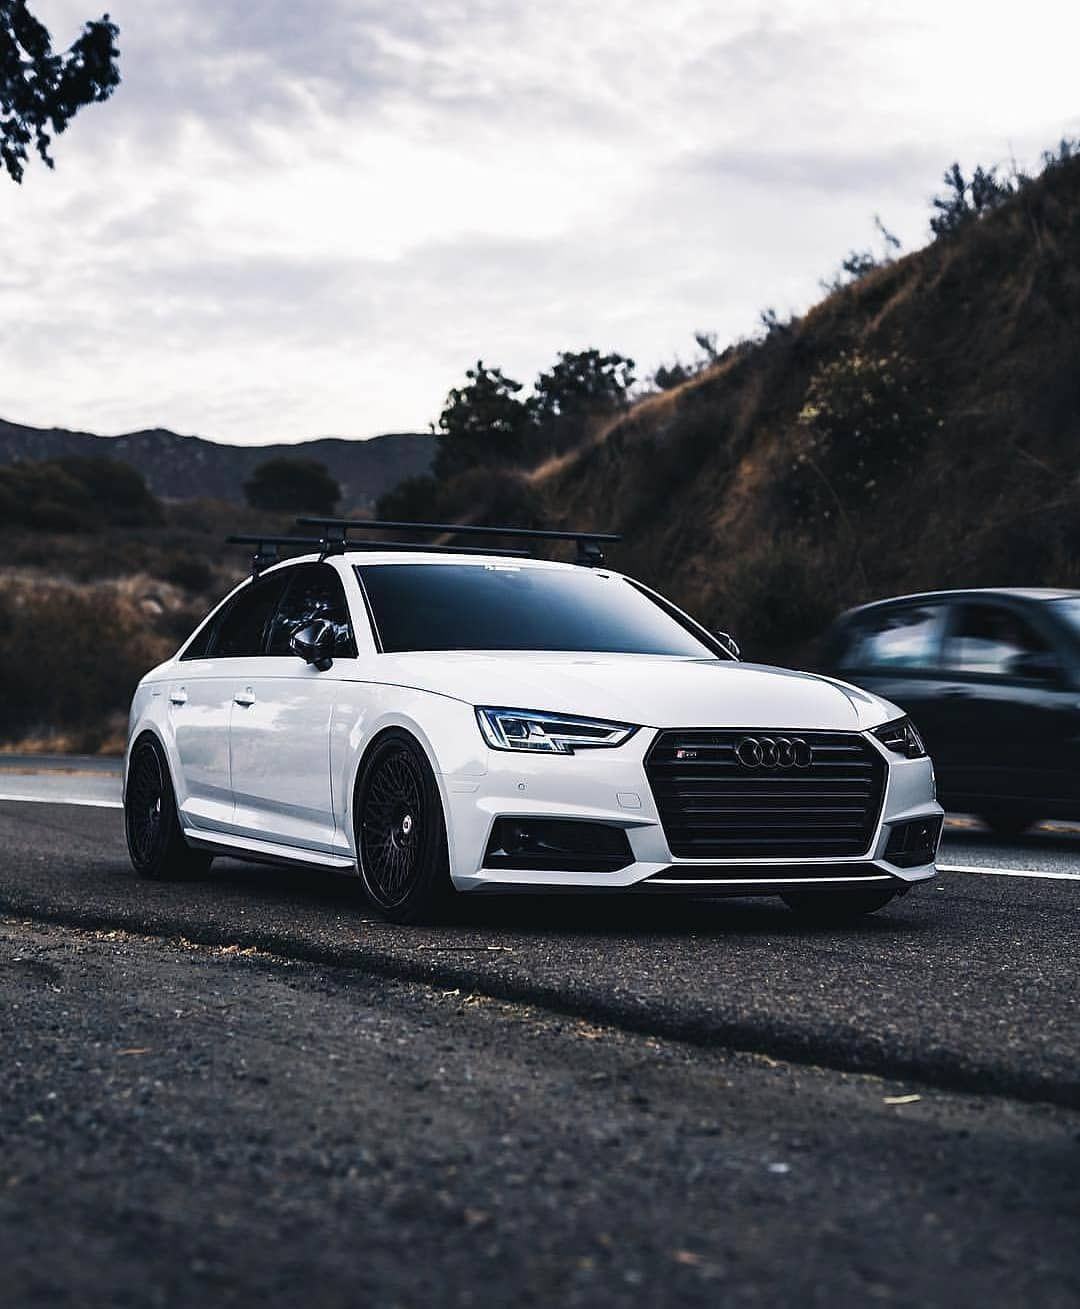 Pin By Kevin Blank On Cars Audi Allroad Audi S4 Tuner Cars